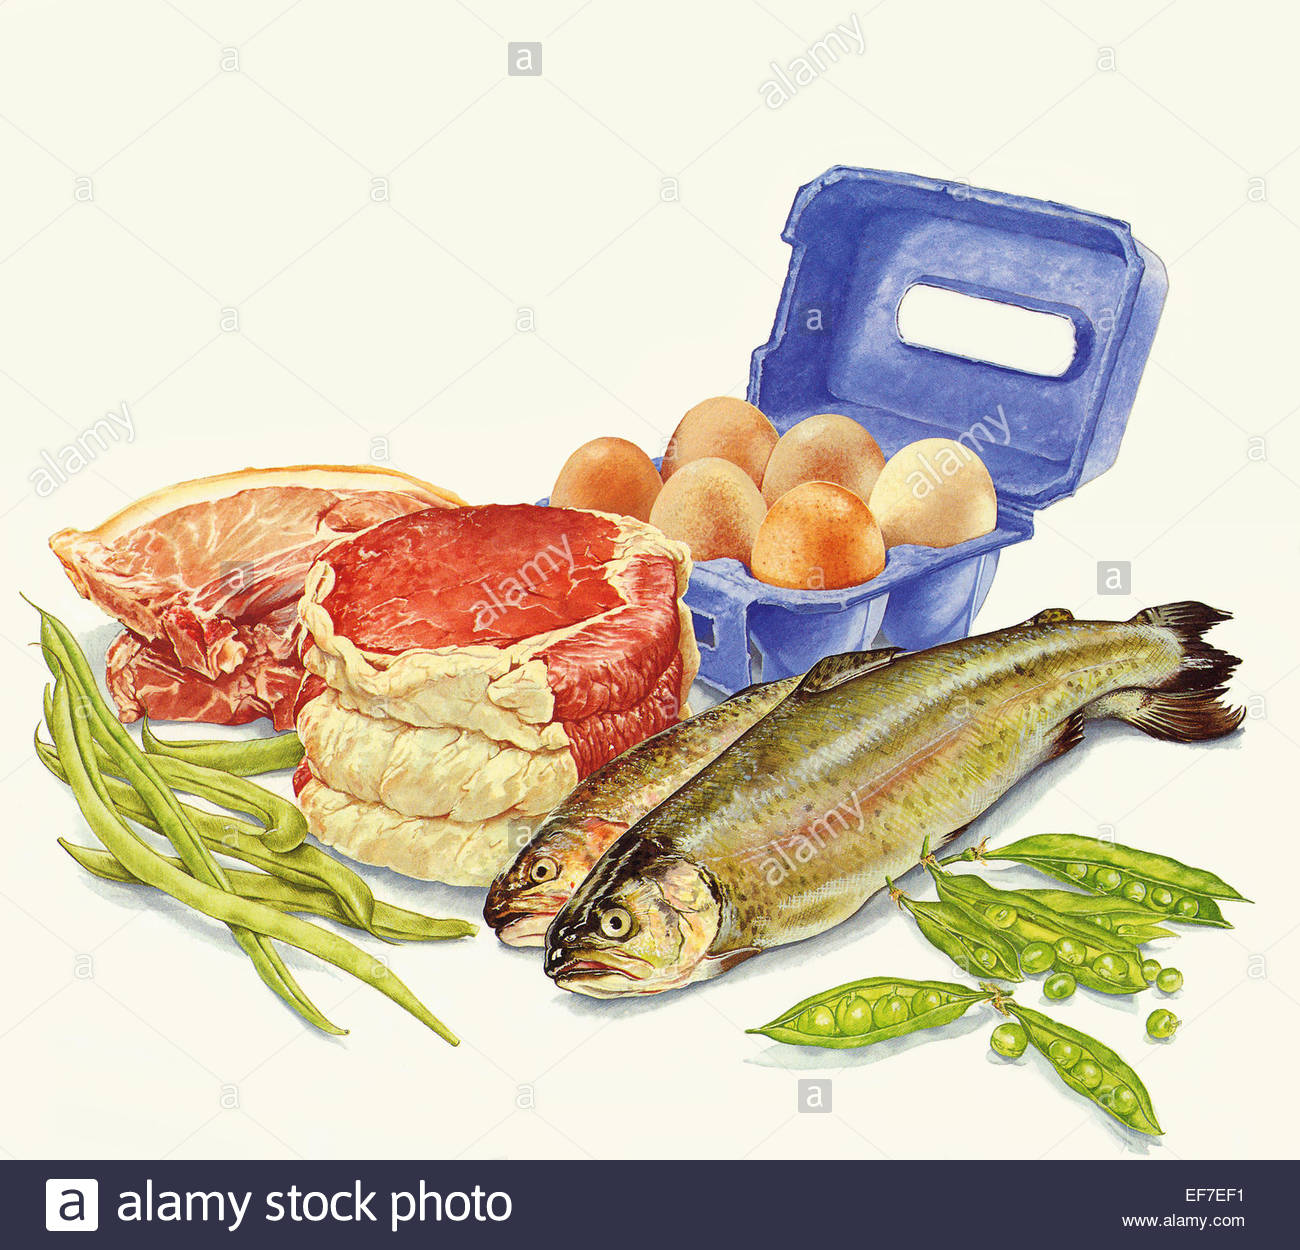 Food with protein meat fish eggs and green beans stock for Protein in fish